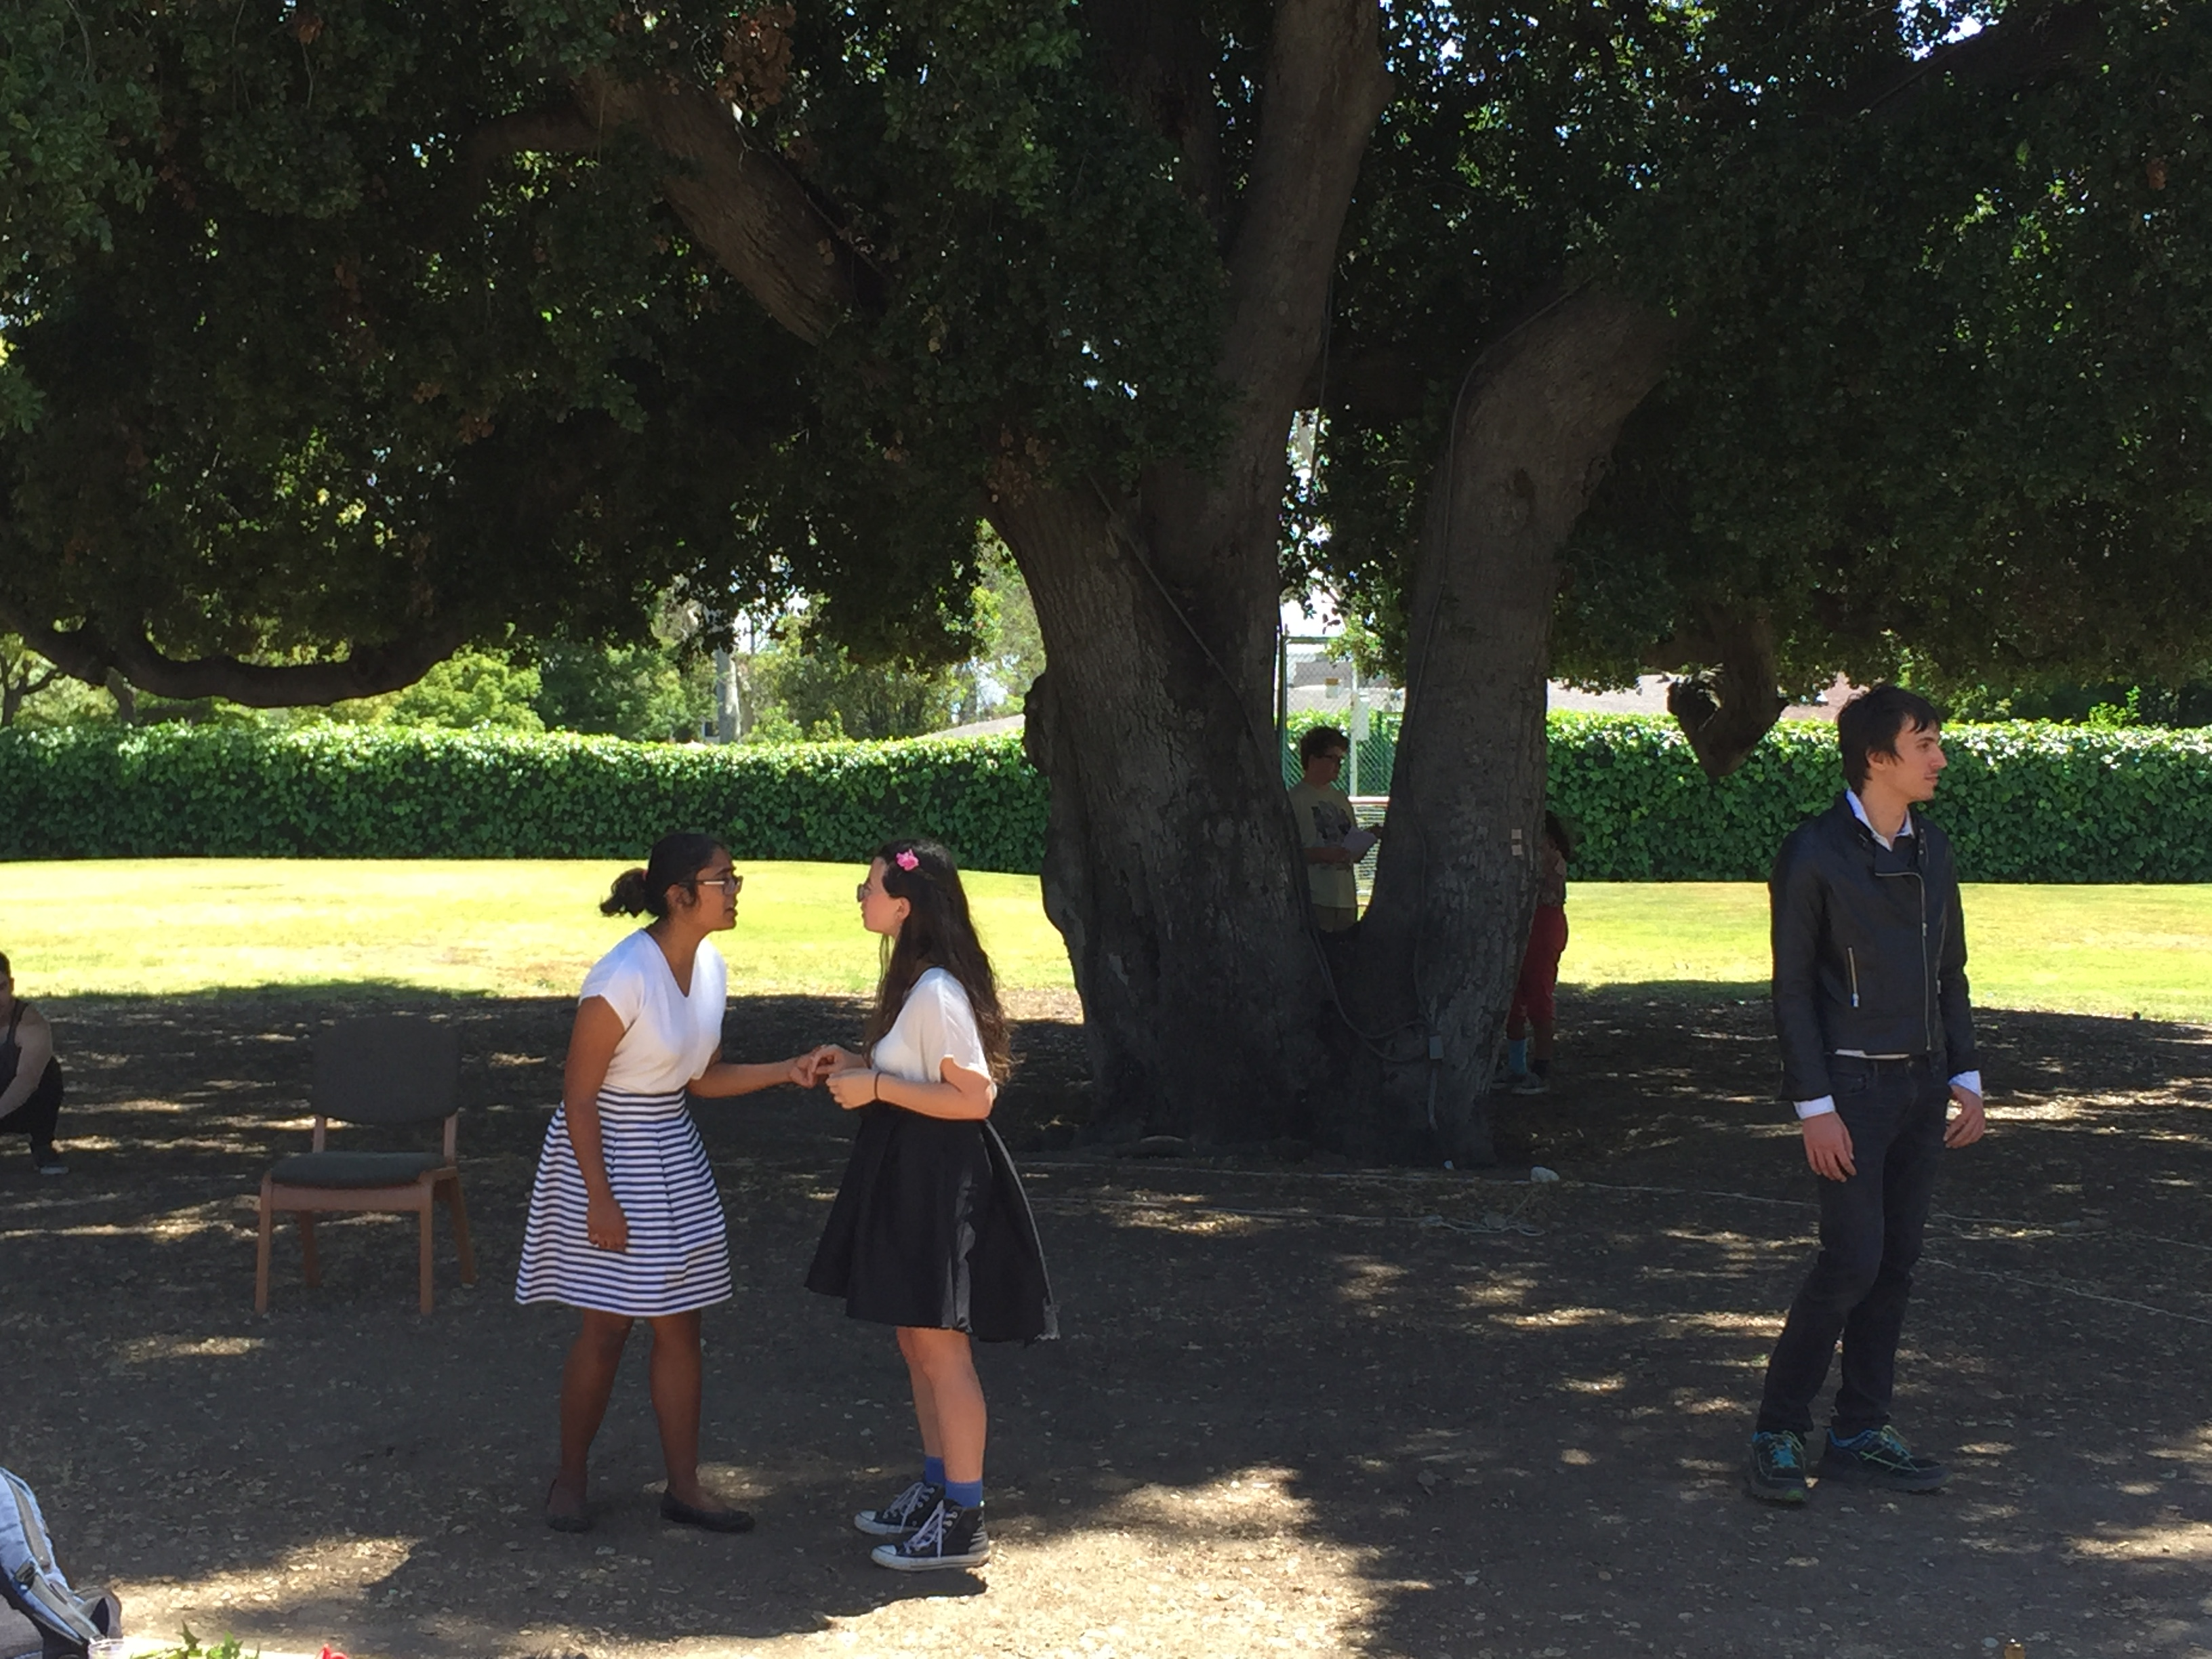 Hermia and Helena speak to each other while Lysander stands off to the side